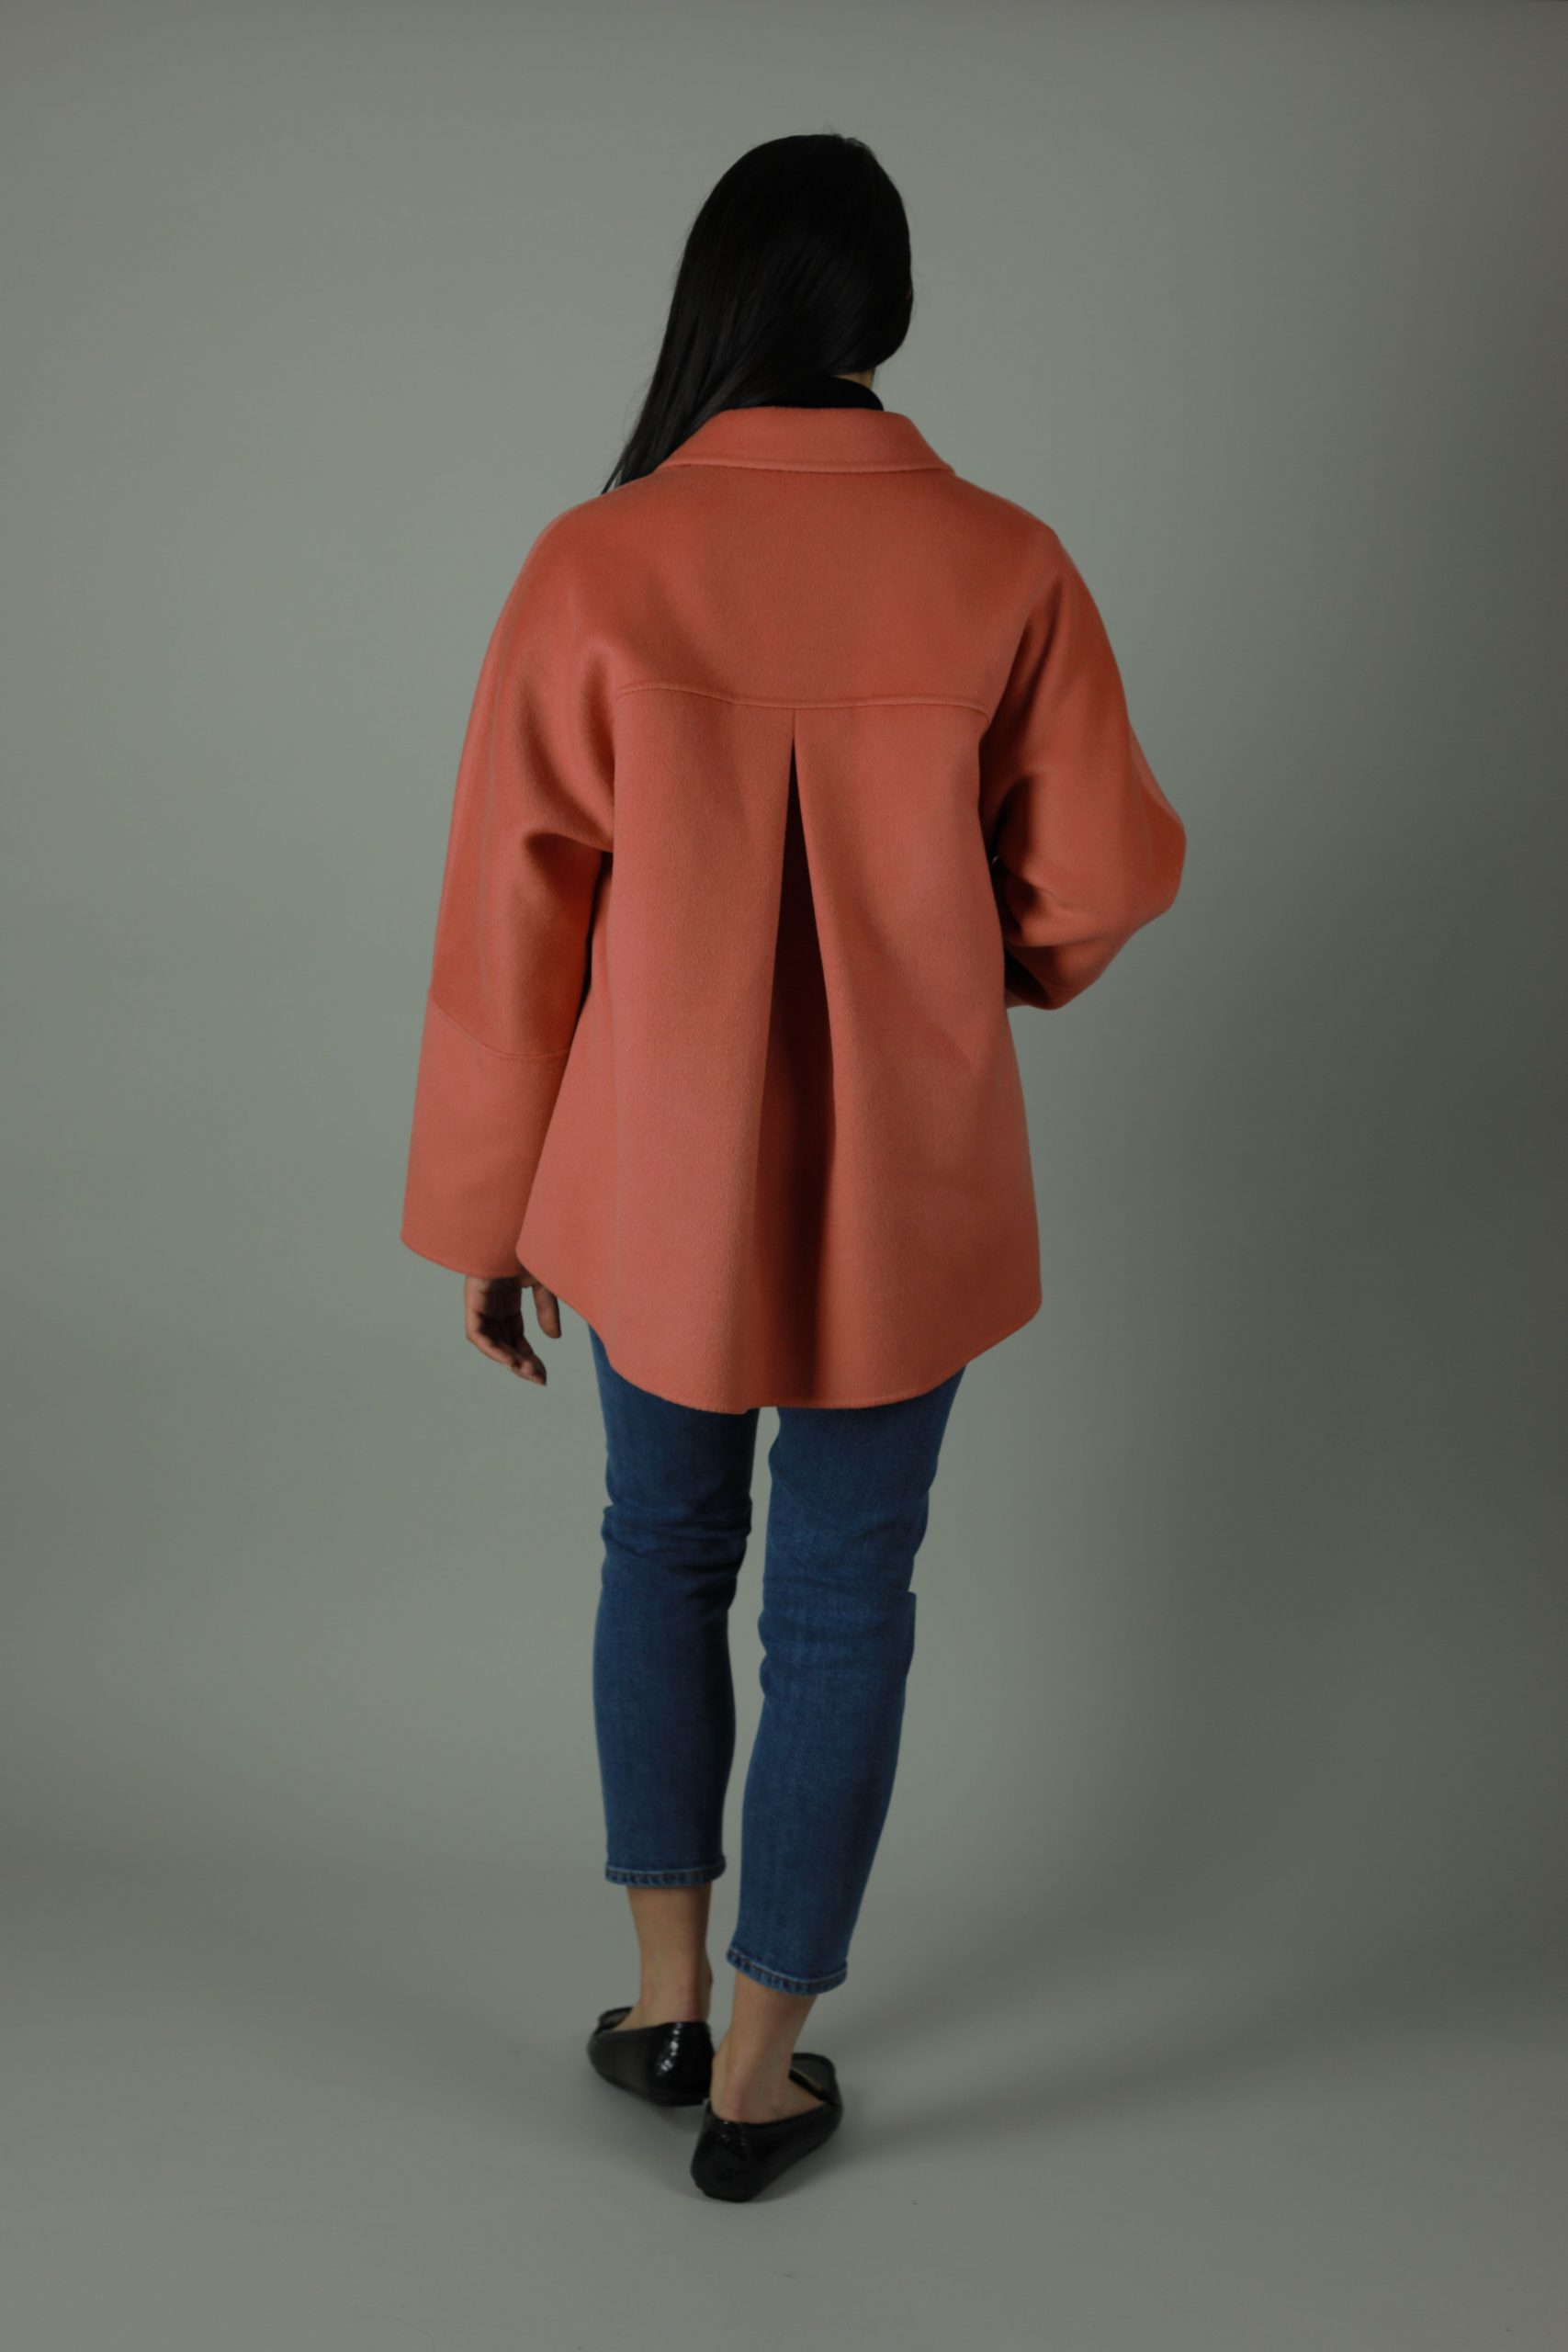 Luxurious style in The Clare Cashmere Coat for a year round look. Thigh length for casual wear, this coat features 100% Cashmere and loose fitting style for comfort and warmth.